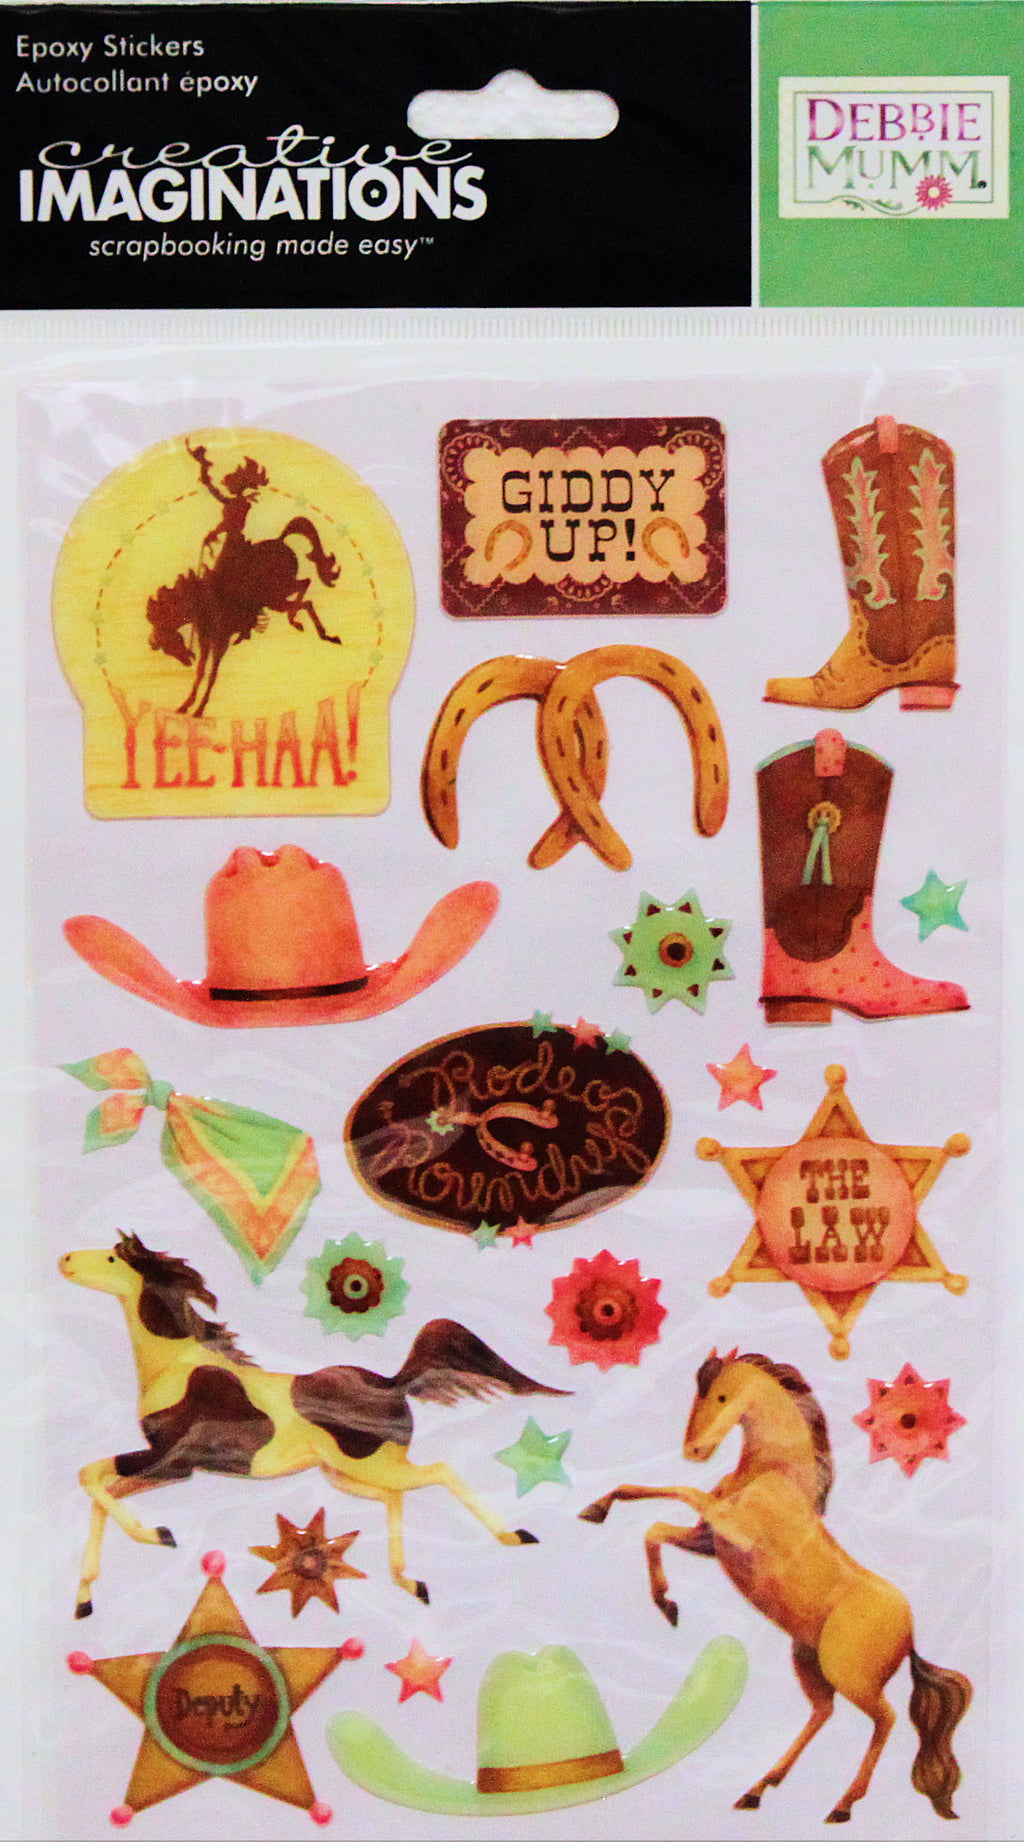 Creative Imaginations Debbie Mumm Wild West Dimensional Epoxy Stickers